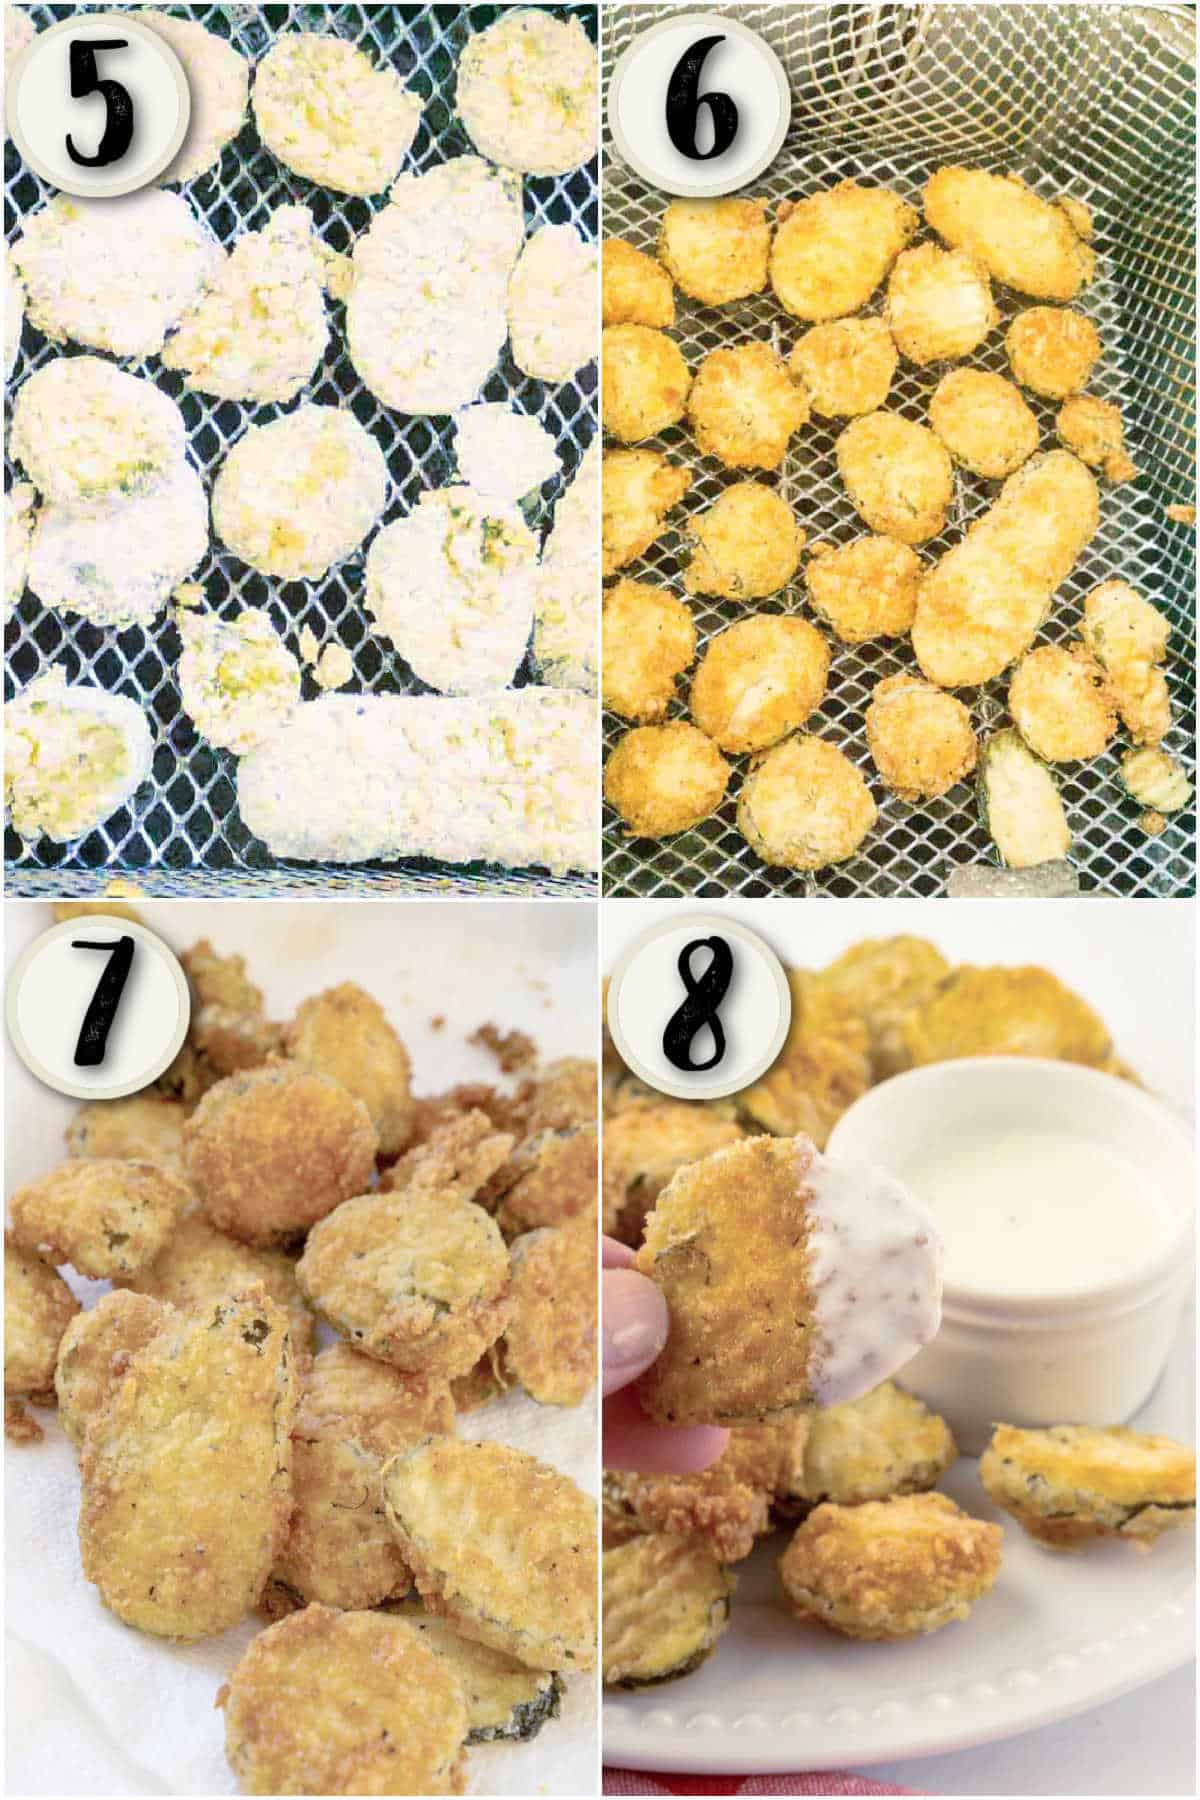 grid of 4 images showing pickles being fried, draining, and dipped in ranch